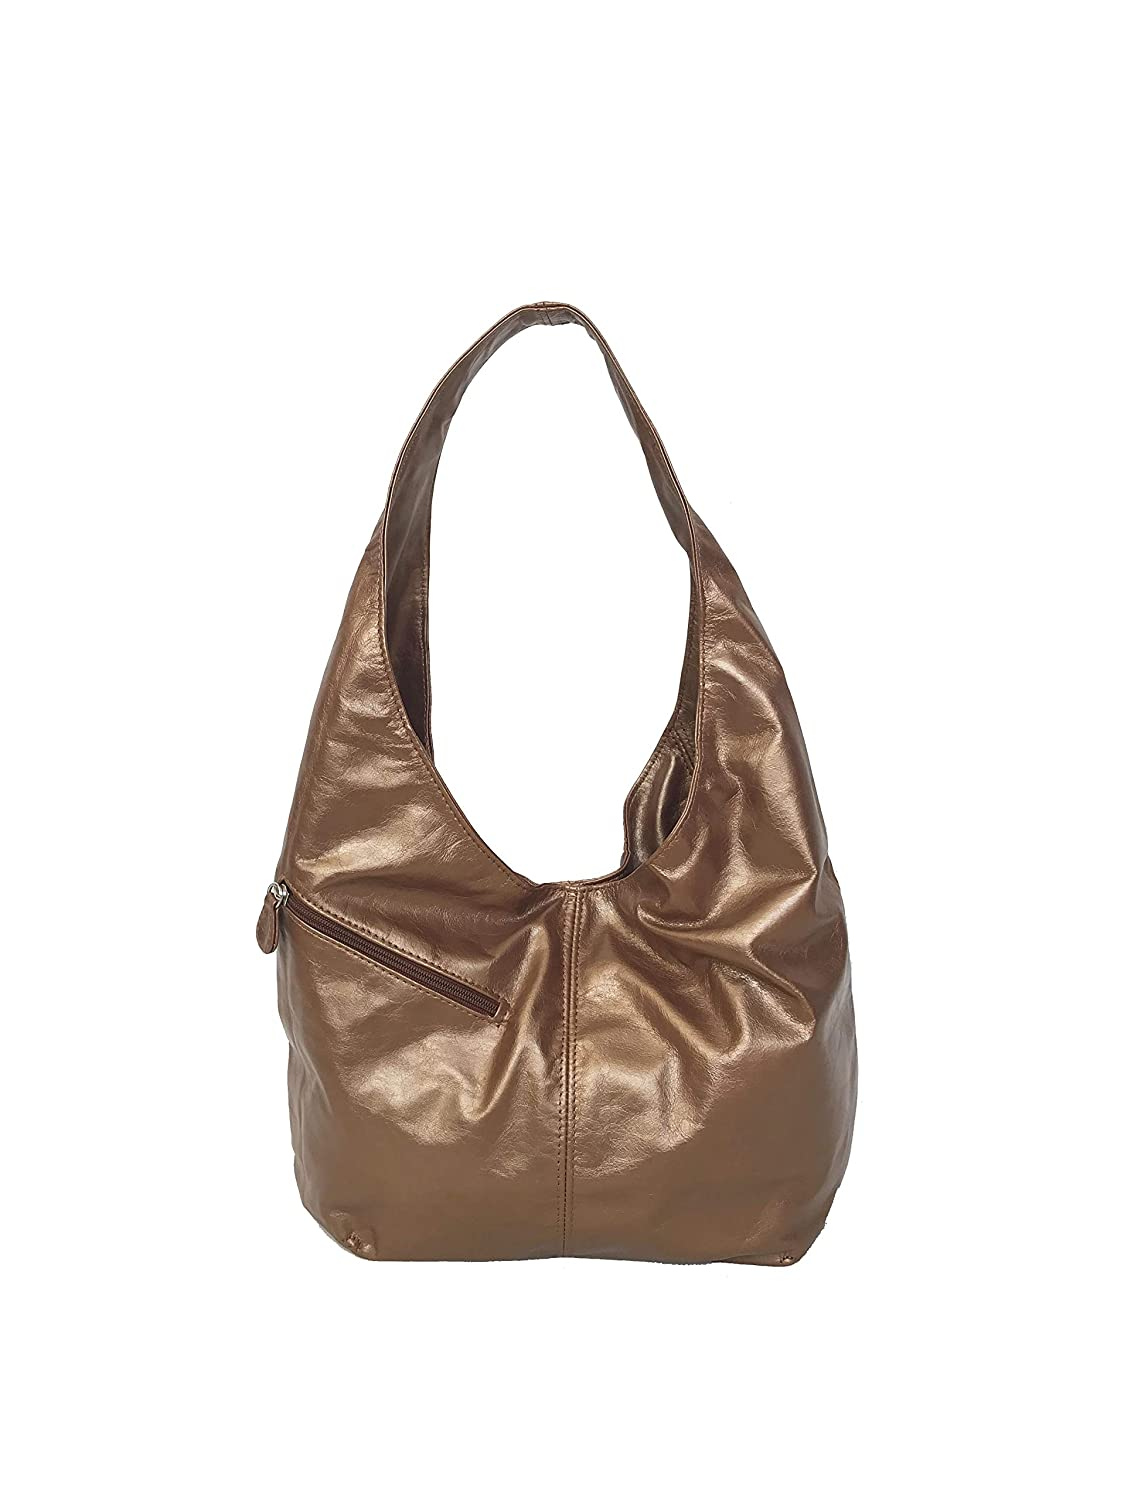 92e0375a54f3 Fgalaze Distressed Camel Leather Hobo Bag w Pockets